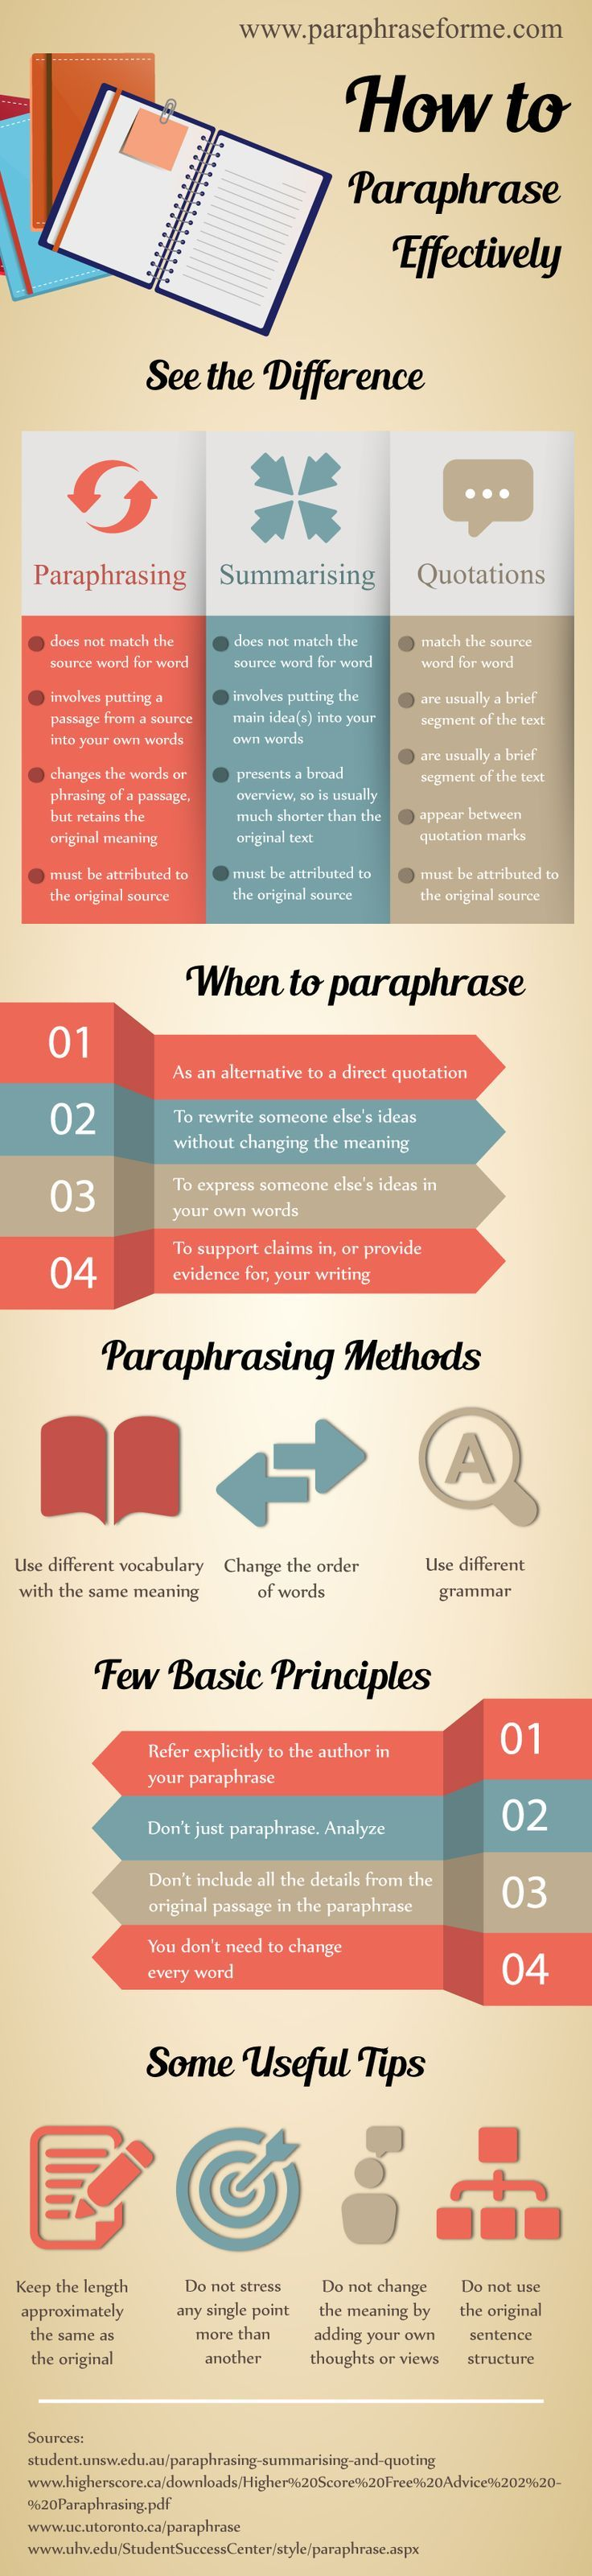 best essay writing ideas essay writing tips you will get the information about how to paraphrase effectively please cleck here summary writingessay